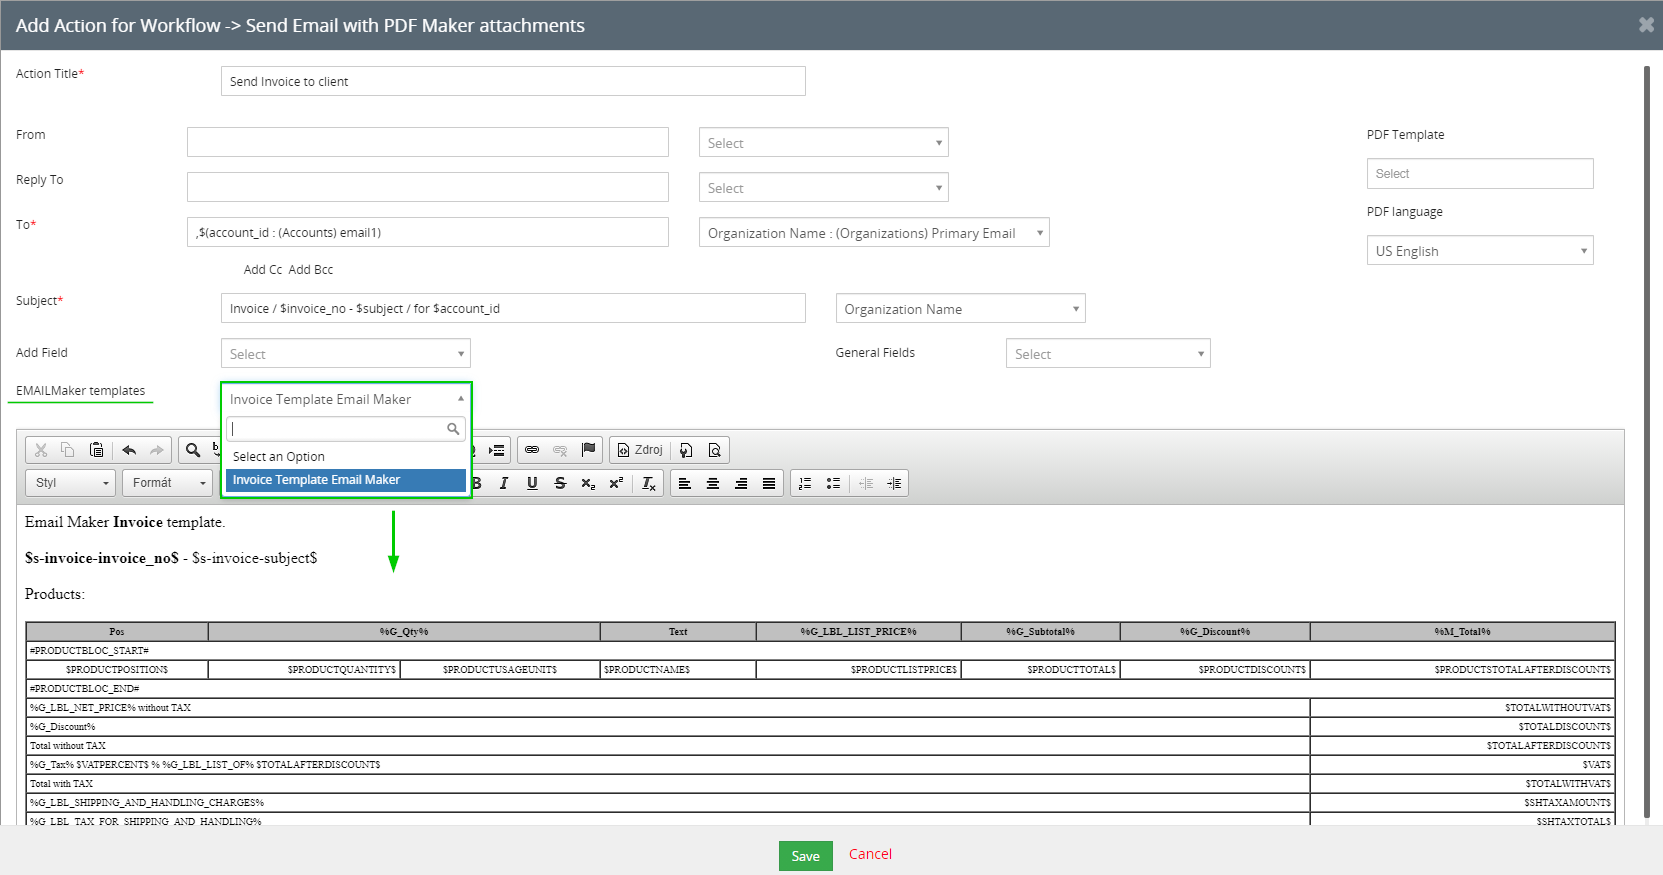 vtiger features news - Ability to use Email Maker template content in the body of the email via Workflow action Send email with PDF maker attachments.